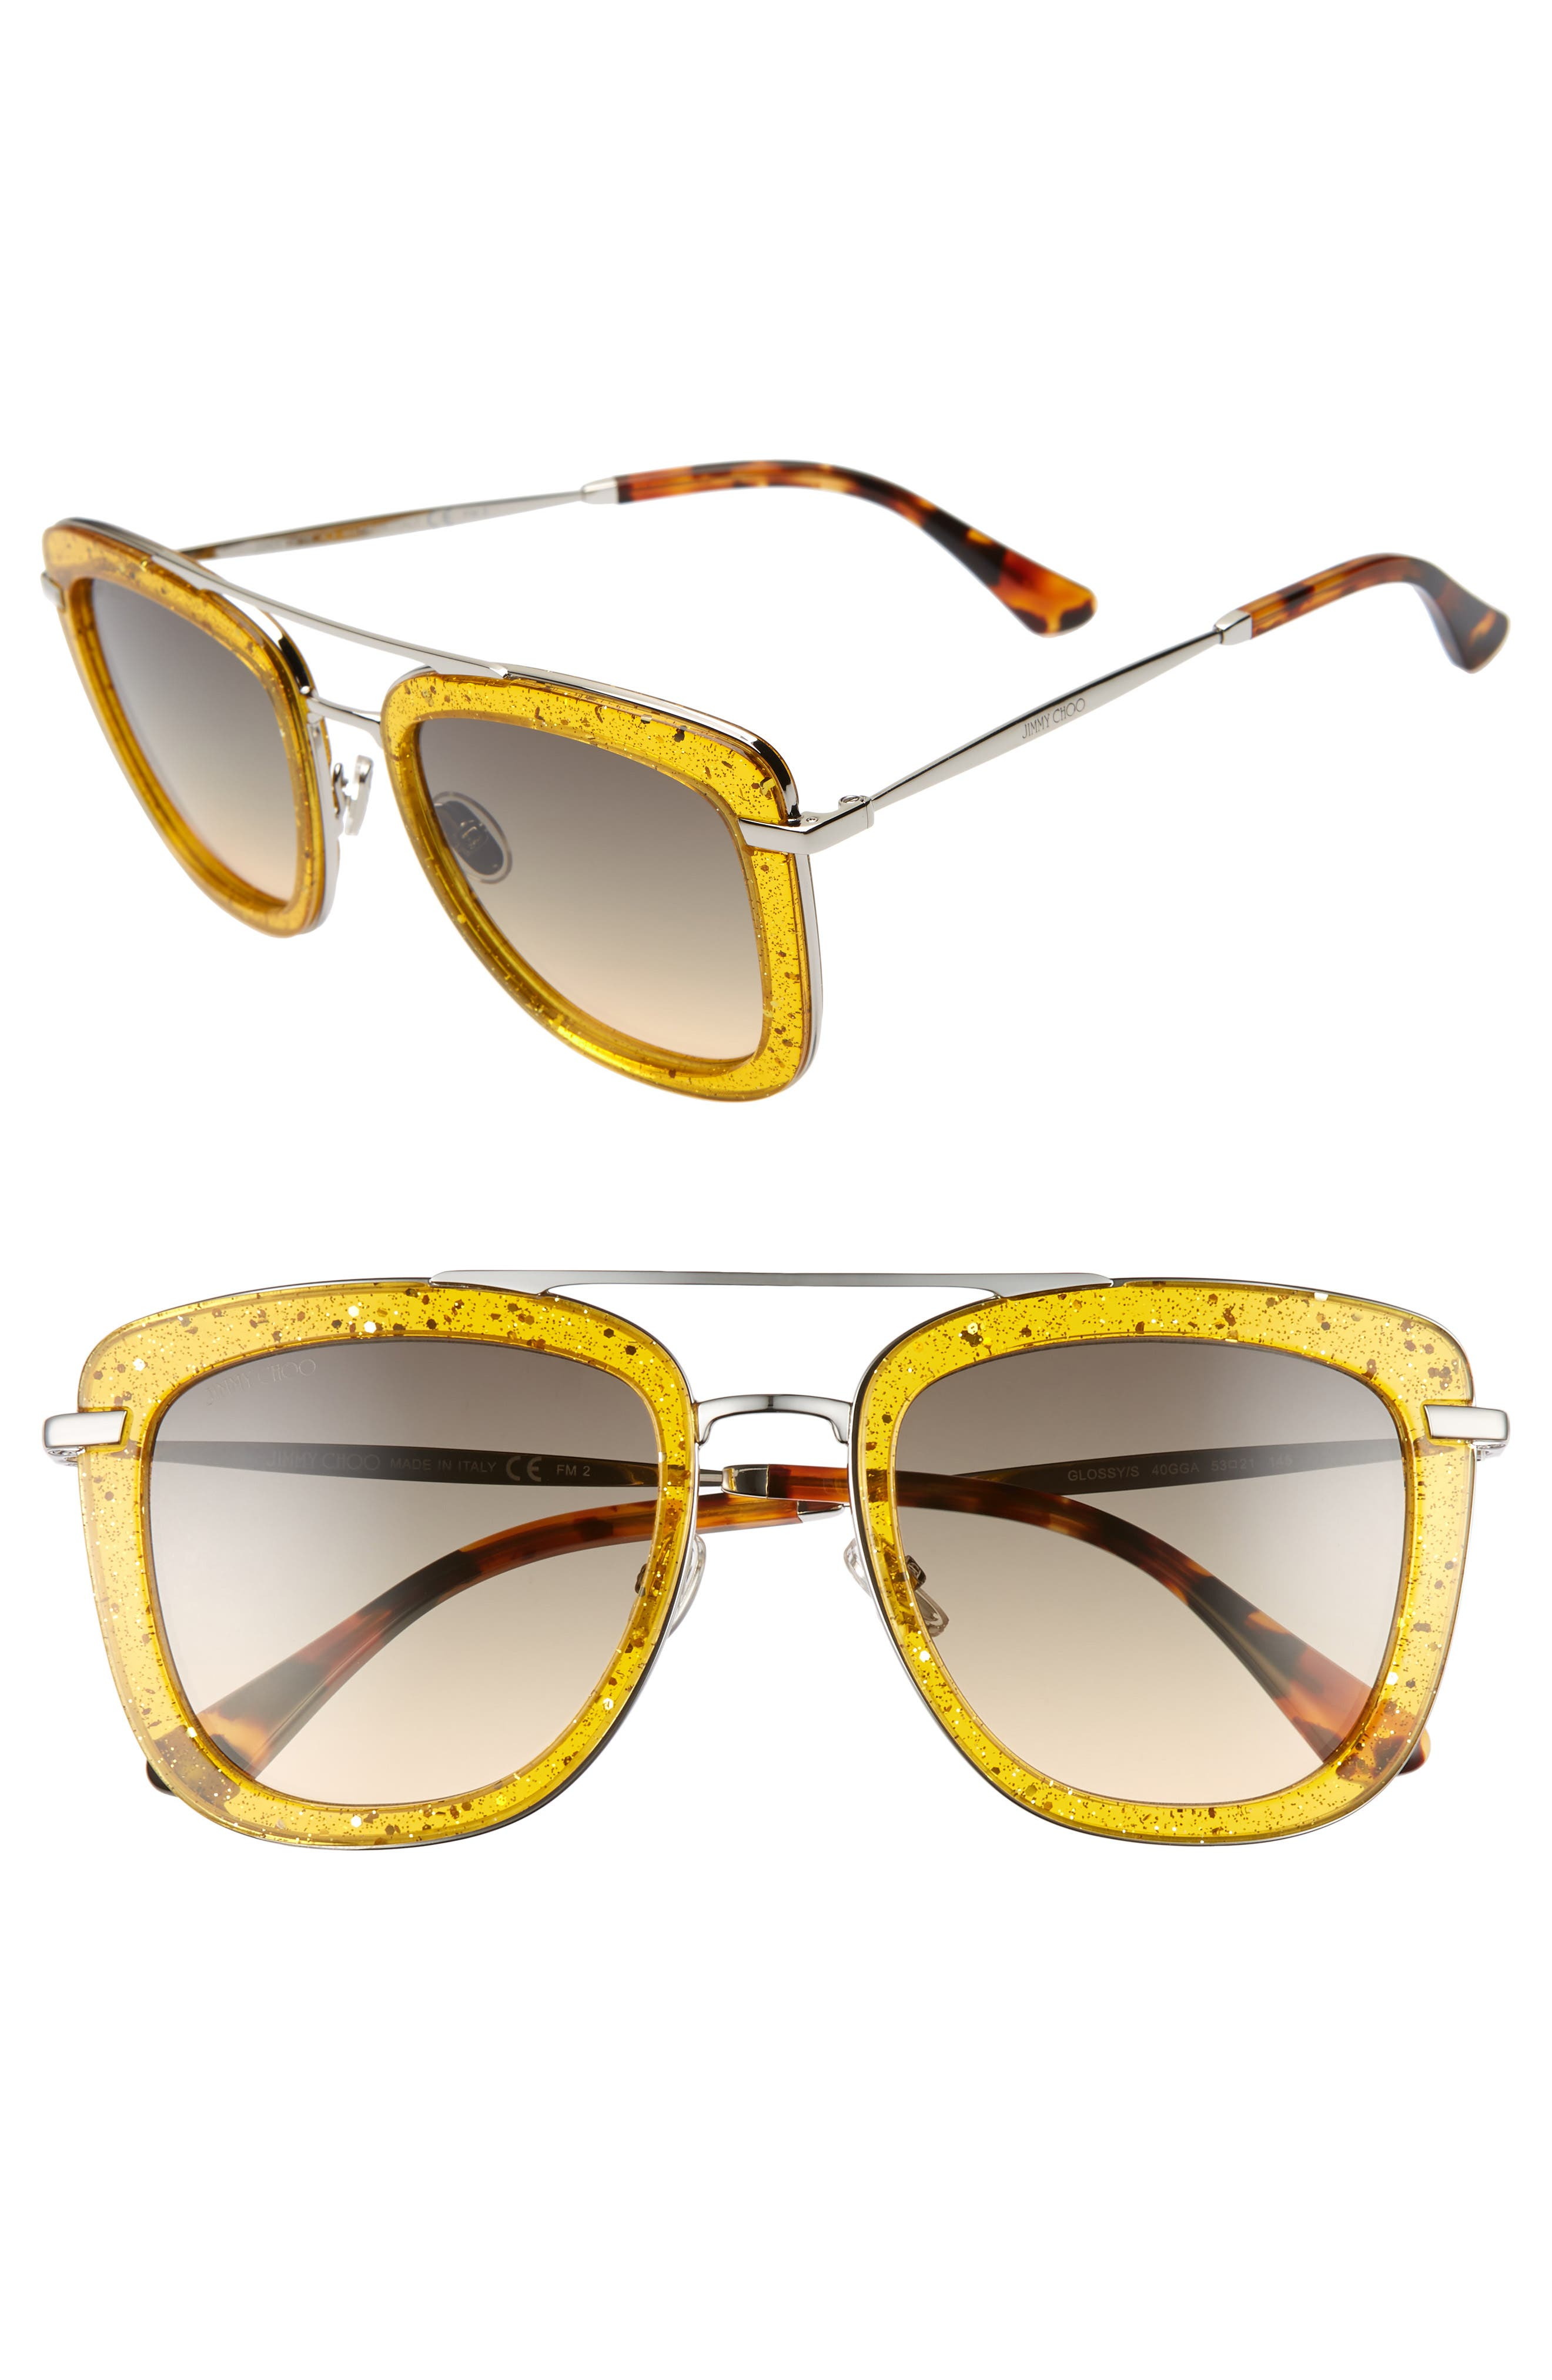 Jimmy Choo Glossy 5m Square Sunglasses - Yellow